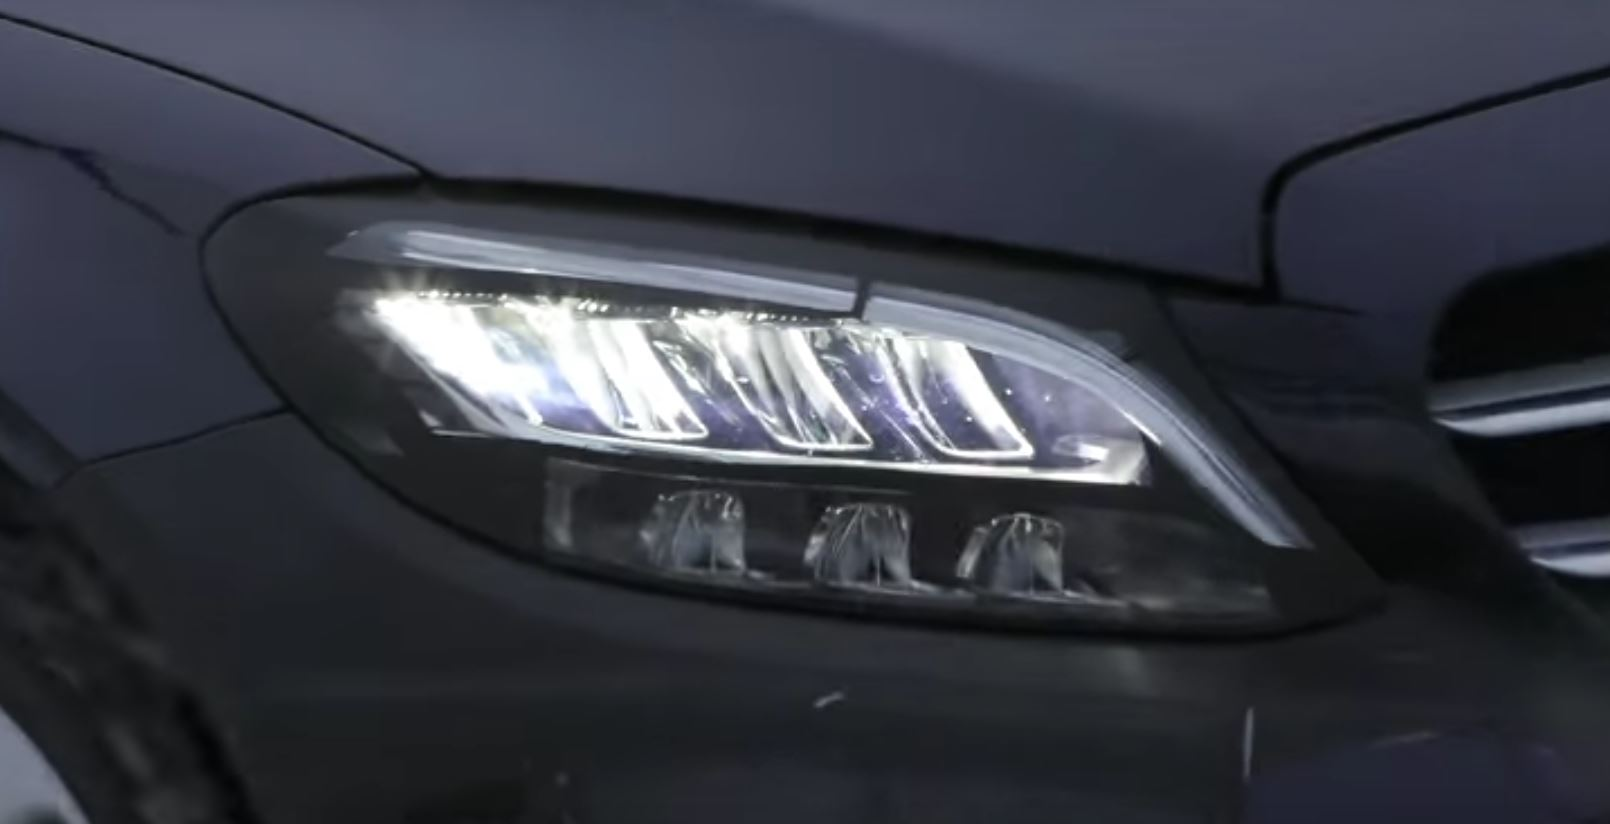 2019 Mercedes C Class Shows Heavily Revised Headlights